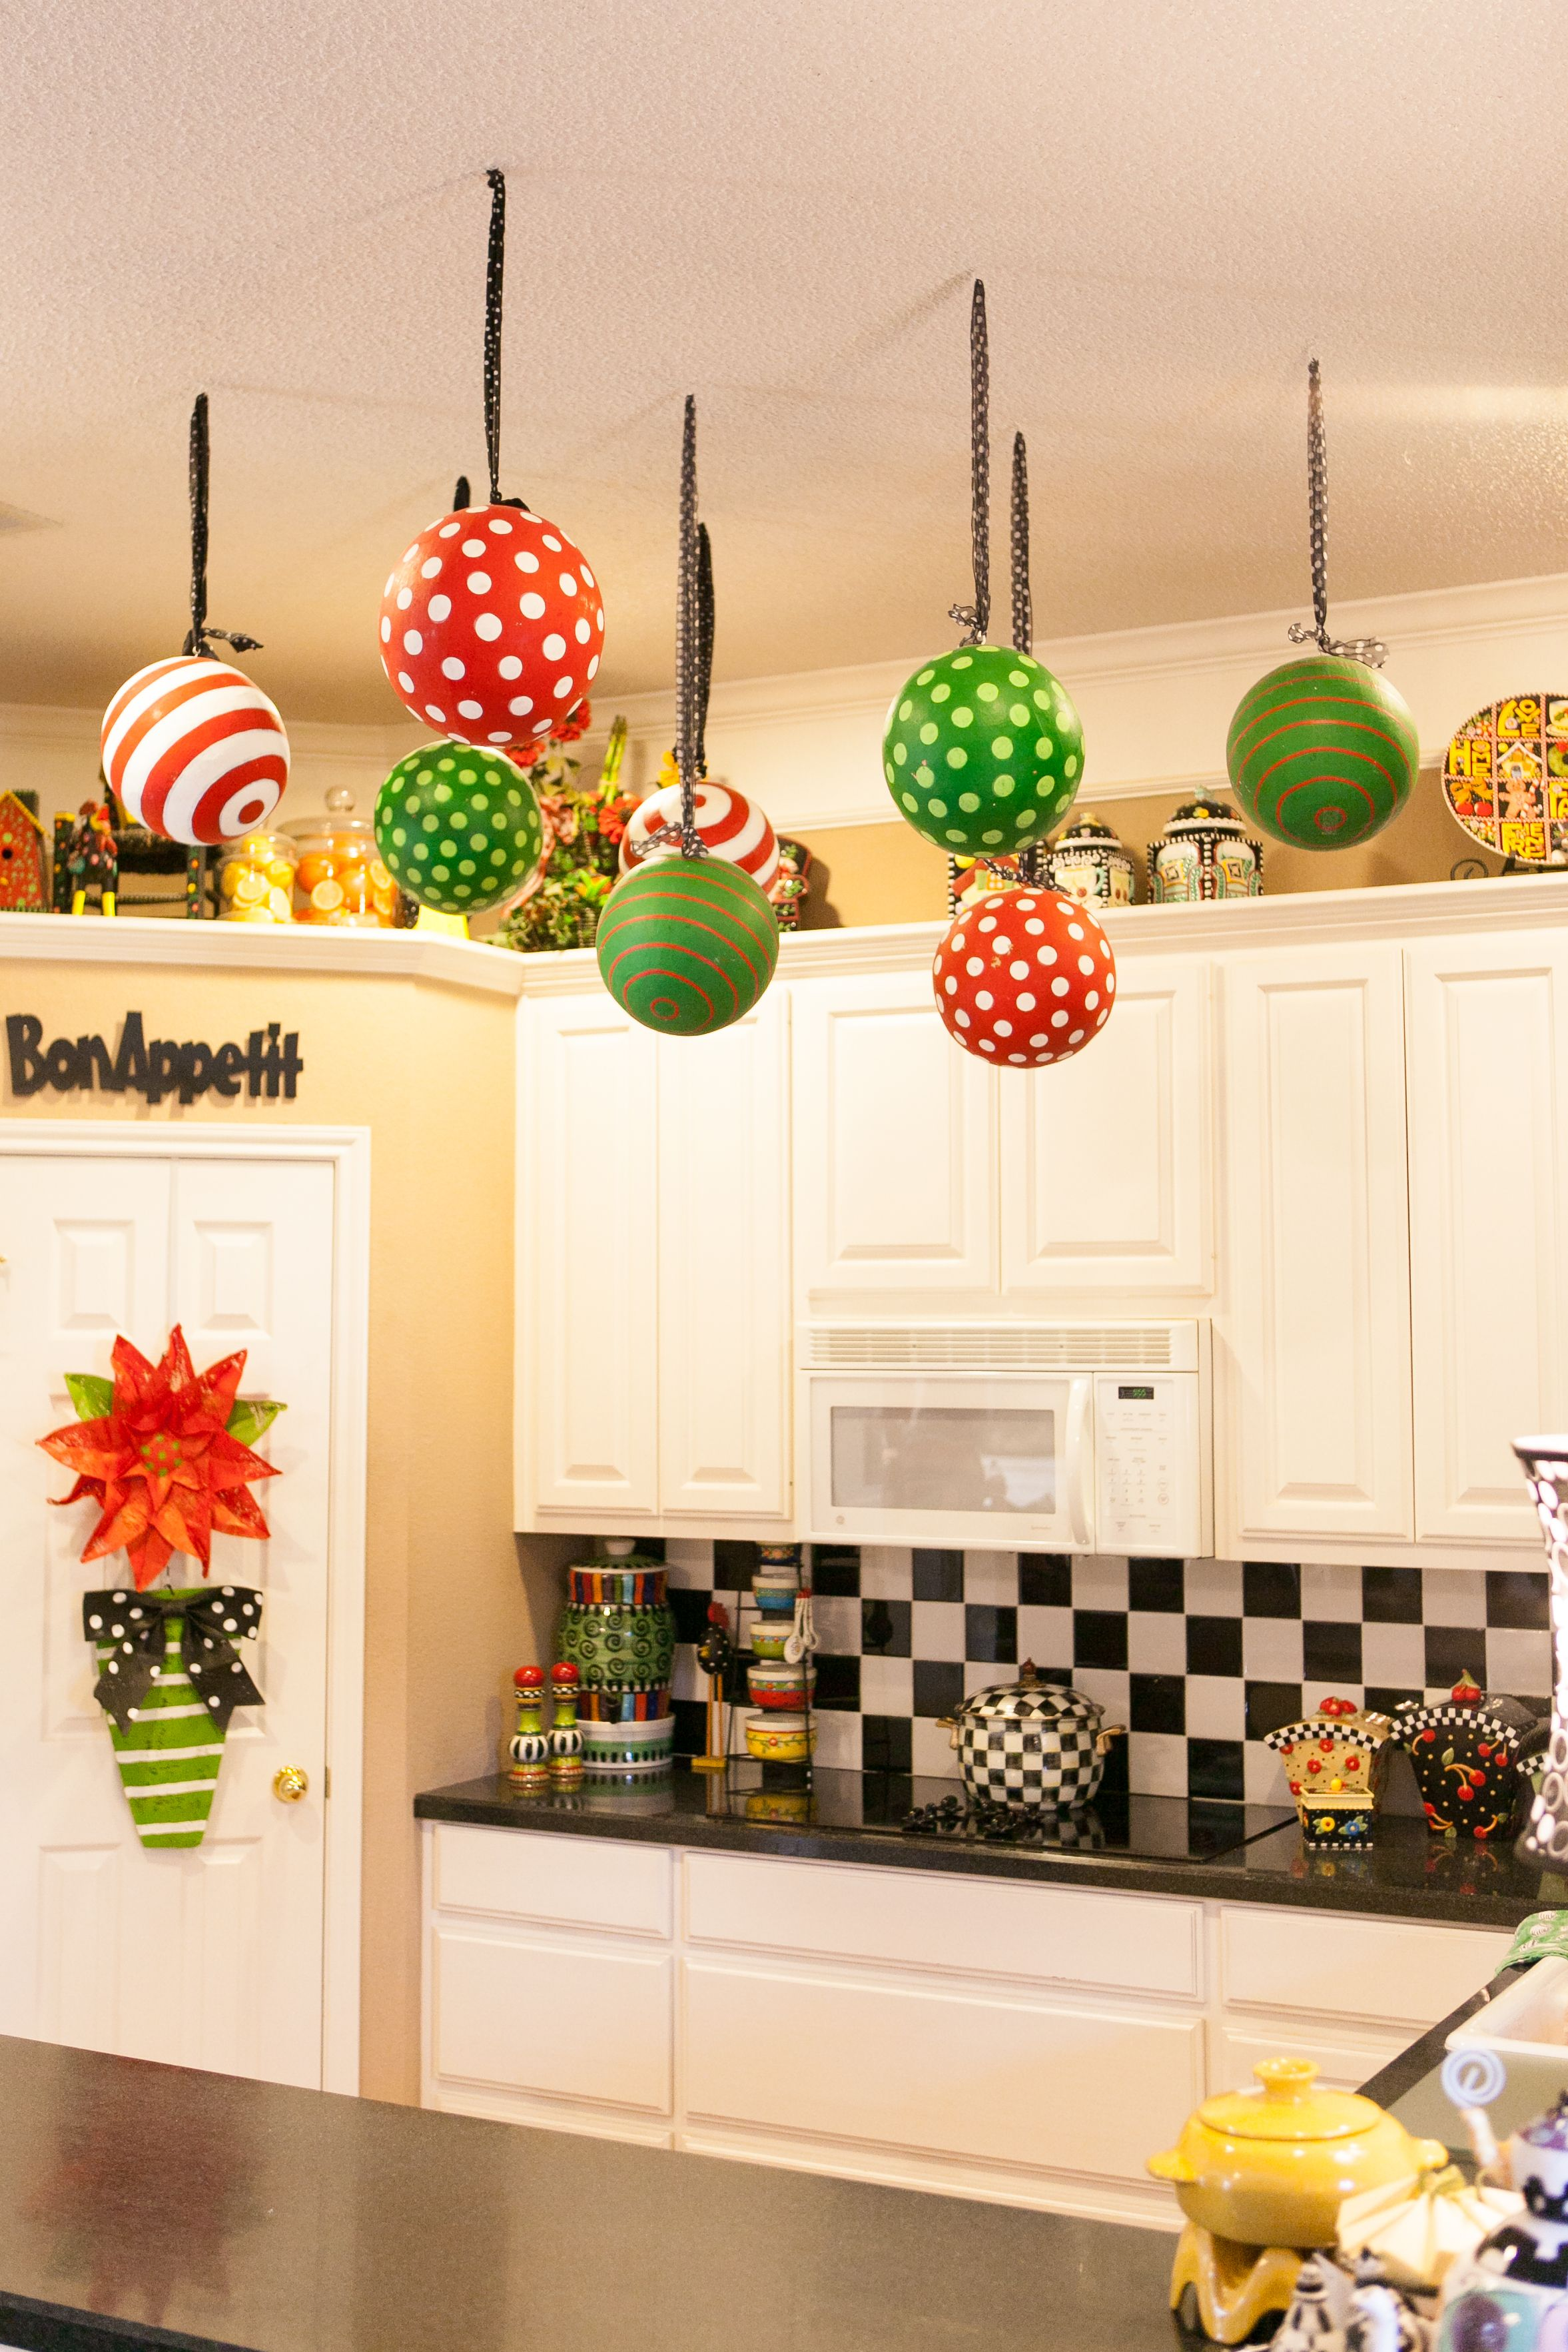 Fun Christmas Decorations for the Kitchen | Christmas Ornaments Hung ...